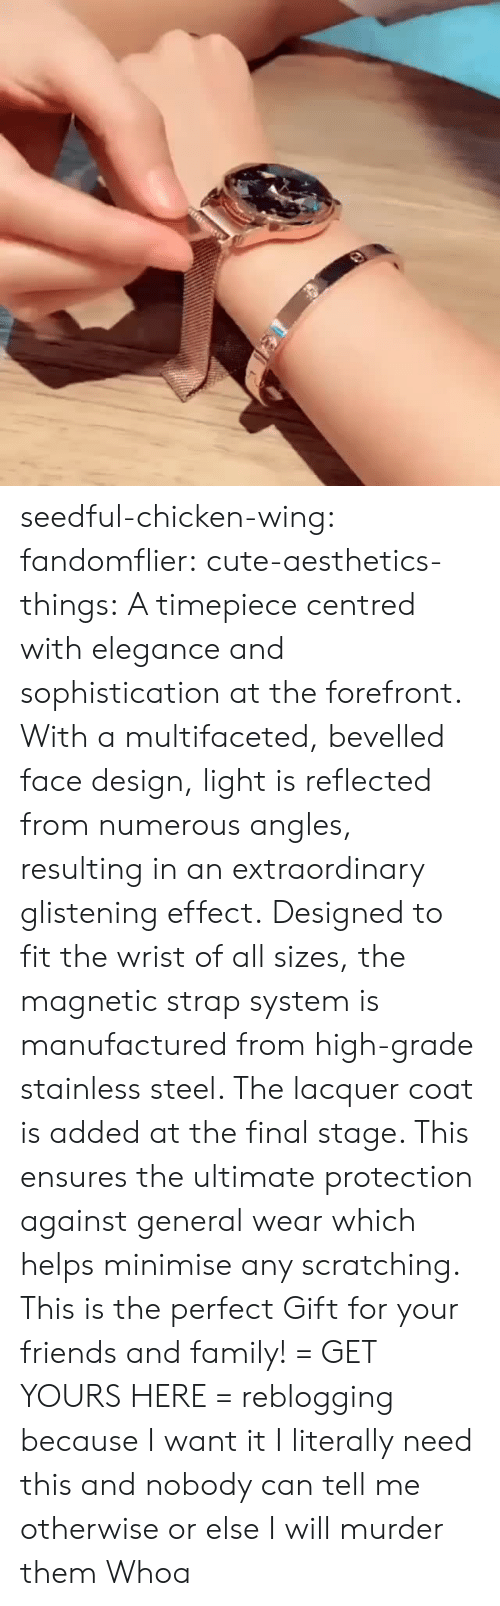 Cute, Family, and Friends: seedful-chicken-wing: fandomflier:  cute-aesthetics-things:   A timepiece centred with elegance and sophistication at the forefront. With a multifaceted, bevelled face design, light is reflected from numerous angles, resulting in an extraordinary glistening effect. Designed to fit the wrist of all sizes, the magnetic strap system is manufactured from high-grade stainless steel. The lacquer coat is added at the final stage. This ensures the ultimate protection against general wear which helps minimise any scratching. This is the perfect Gift for your friends and family! = GET YOURS HERE =   reblogging because I want it  I literally need this and nobody can tell me otherwise or else I will murder them   Whoa